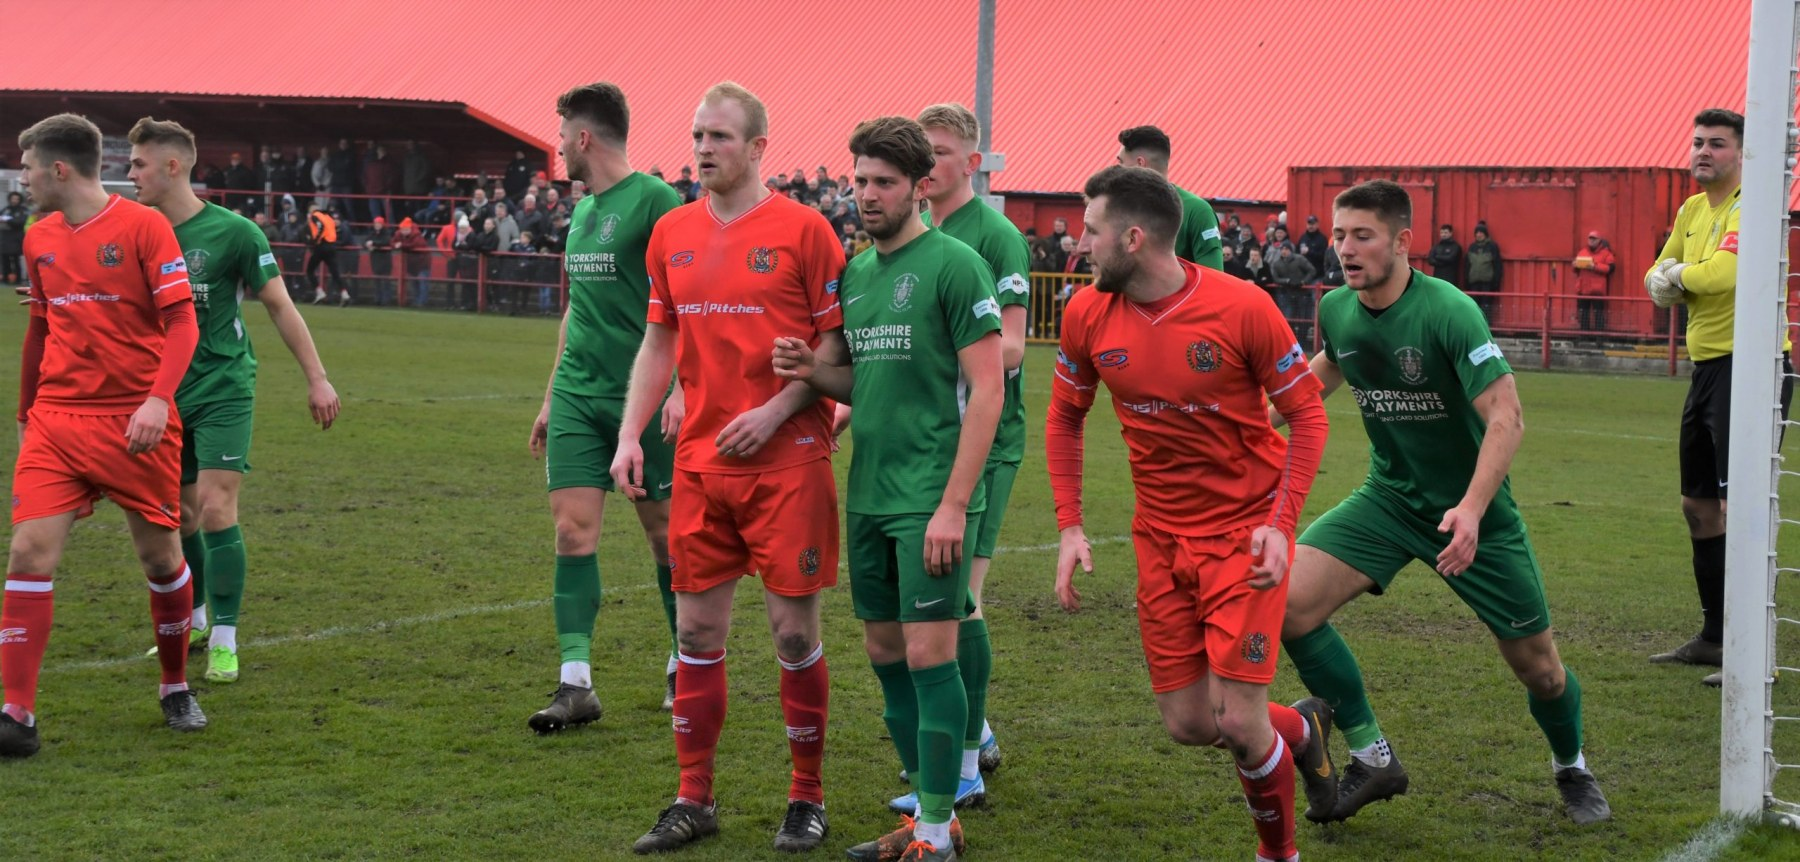 The-Reds-line-up-in-the-Brighouse-goal-mouth-Ben-Challis-scaled